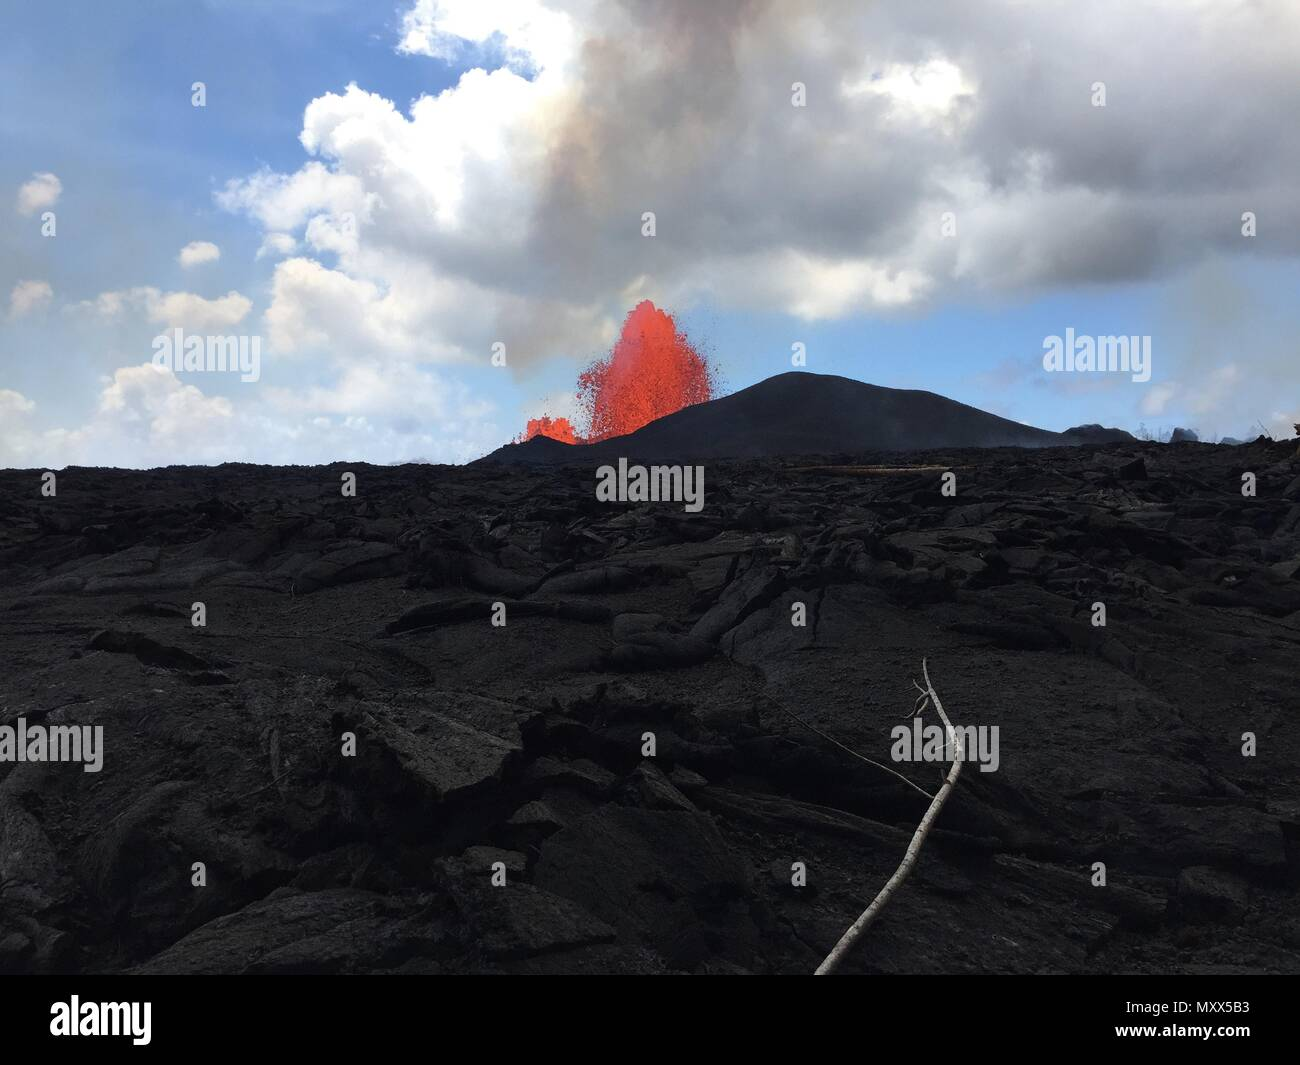 A massive lava fountain spewing magma 230 feet into the air from fissure 8 at the corner of Nohea and Leilani caused by the eruption of the Kilauea volcano June 3, 2018 in Hawaii. The recent eruption continues destroying homes, forcing evacuations and spewing lava and poison gas on the Big Island of Hawaii. - Stock Image